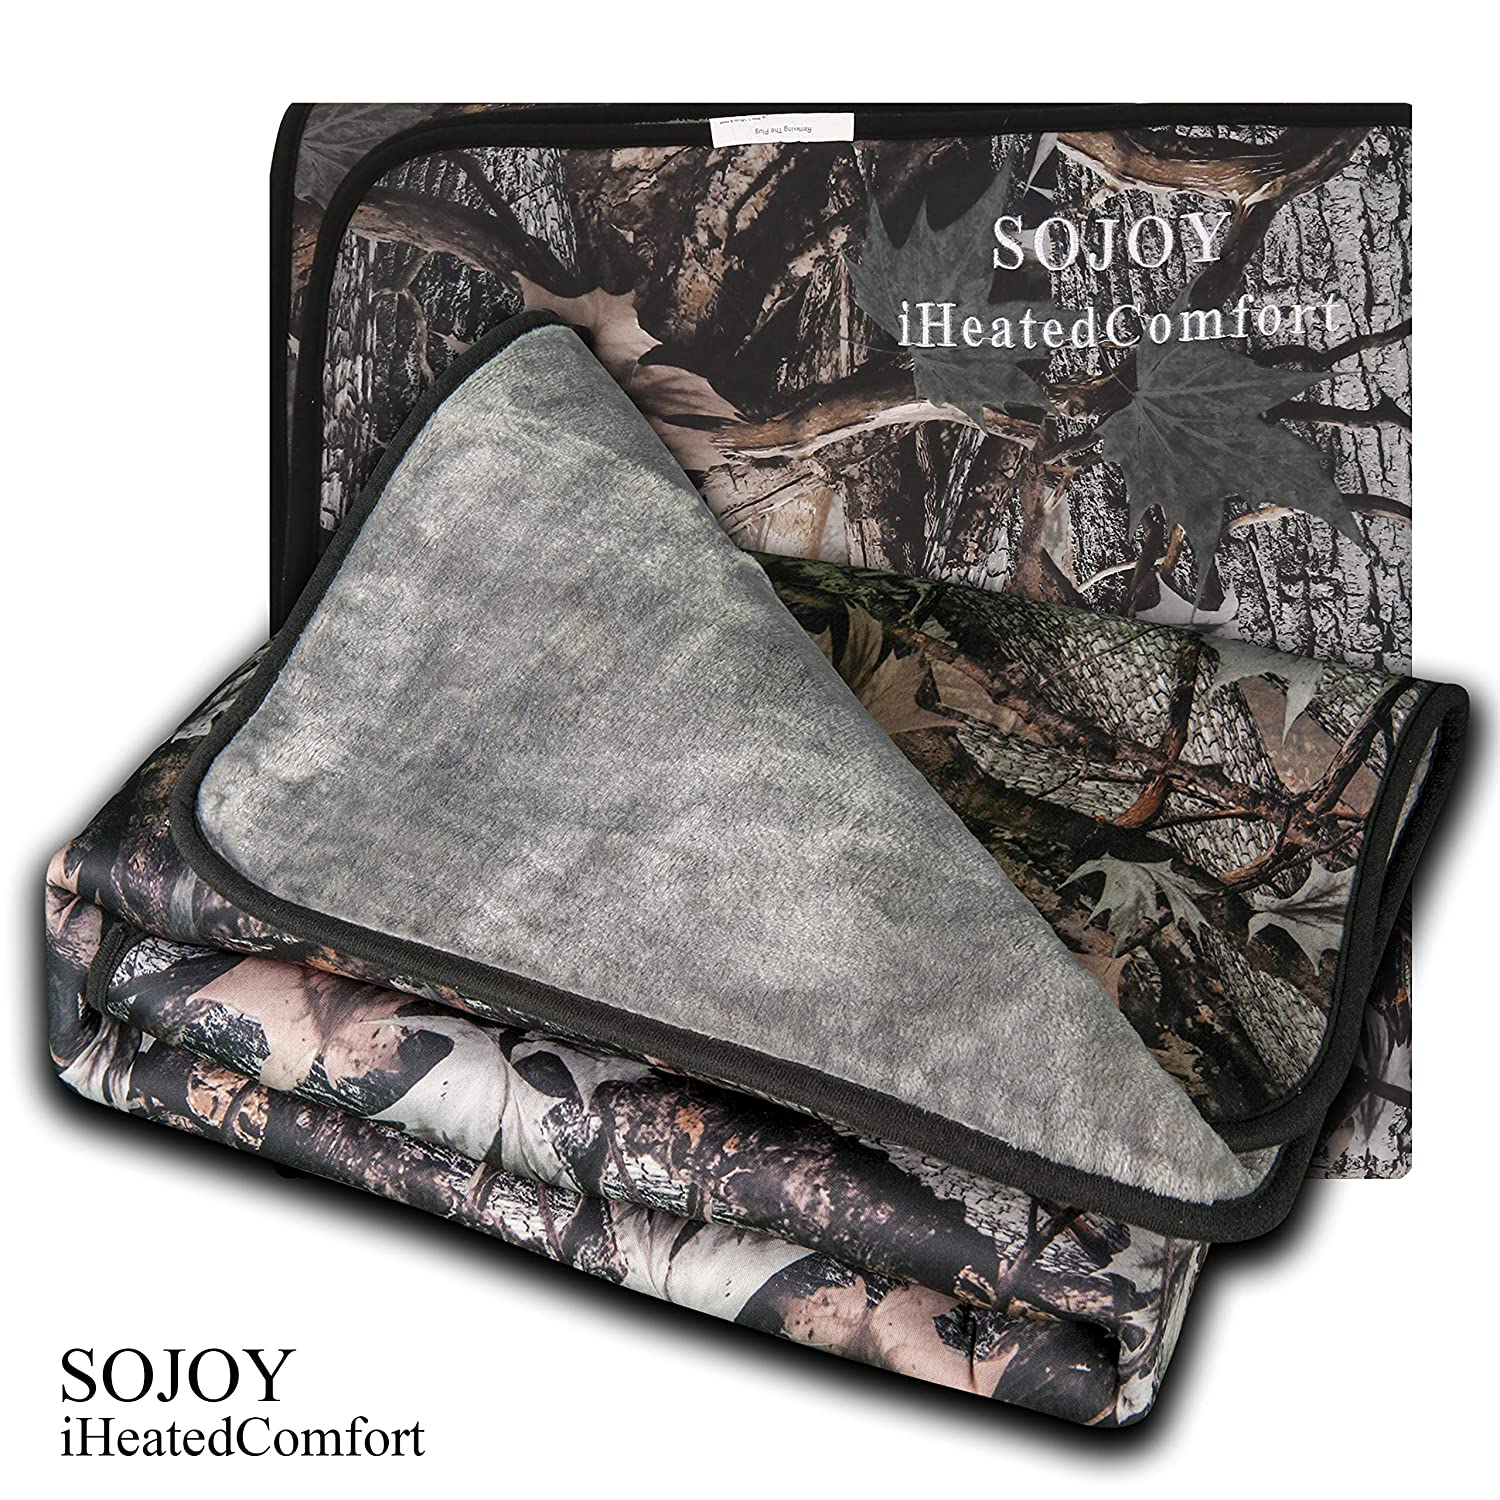 Sojoy 12V Electric Heated Travel Blanket for Car, Truck, Boats or RV with High/Mid/Low Temp Control, Multi-Function Smart Timing (59'x40') (Camouflage) Multi-Function Smart Timing (59x40) (Camouflage) Sojoy Auto Accessories